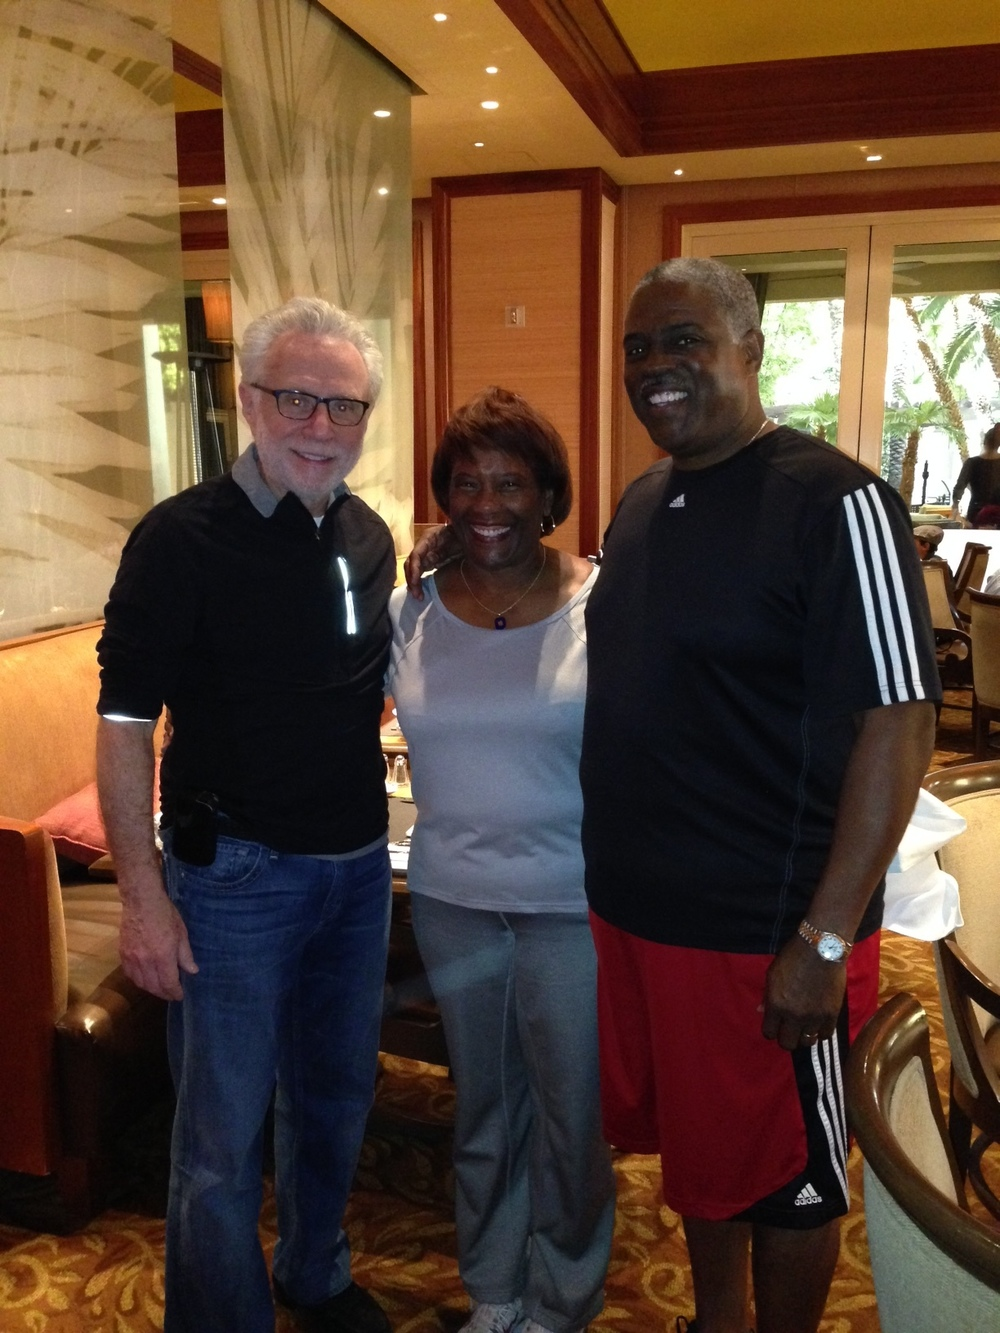 Professor Mark T. Harris, Esq. and Dr. Marianna Harris, EdD. with CNN Journalist and Television News Anchor Wolf Blitzer